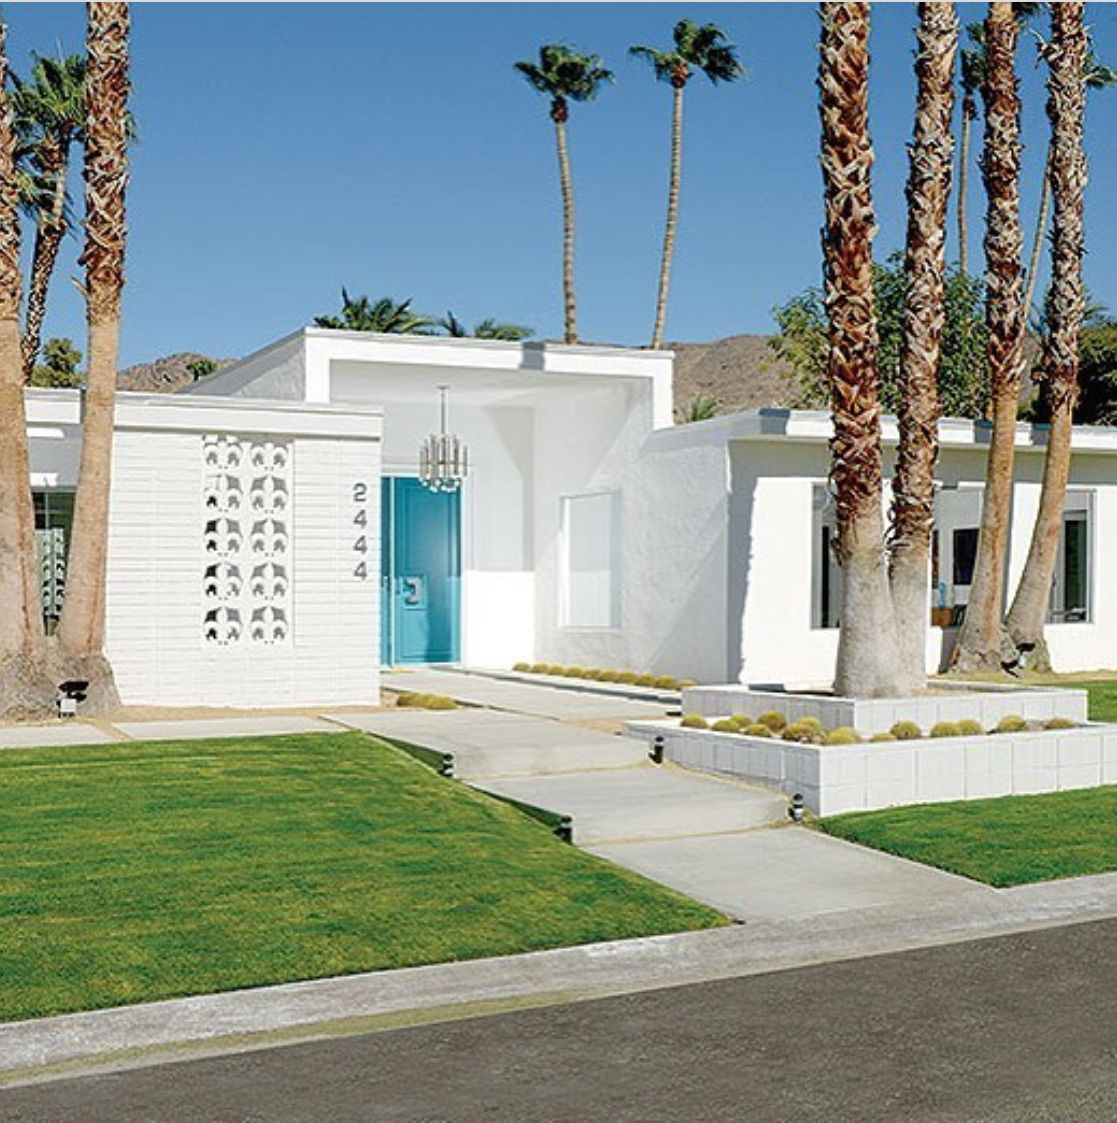 Modern homes los angeles brentwood untouched 1960 mid century modern - Palm Springs Clean Mid Century Modern Exterior With Aqua Door White House